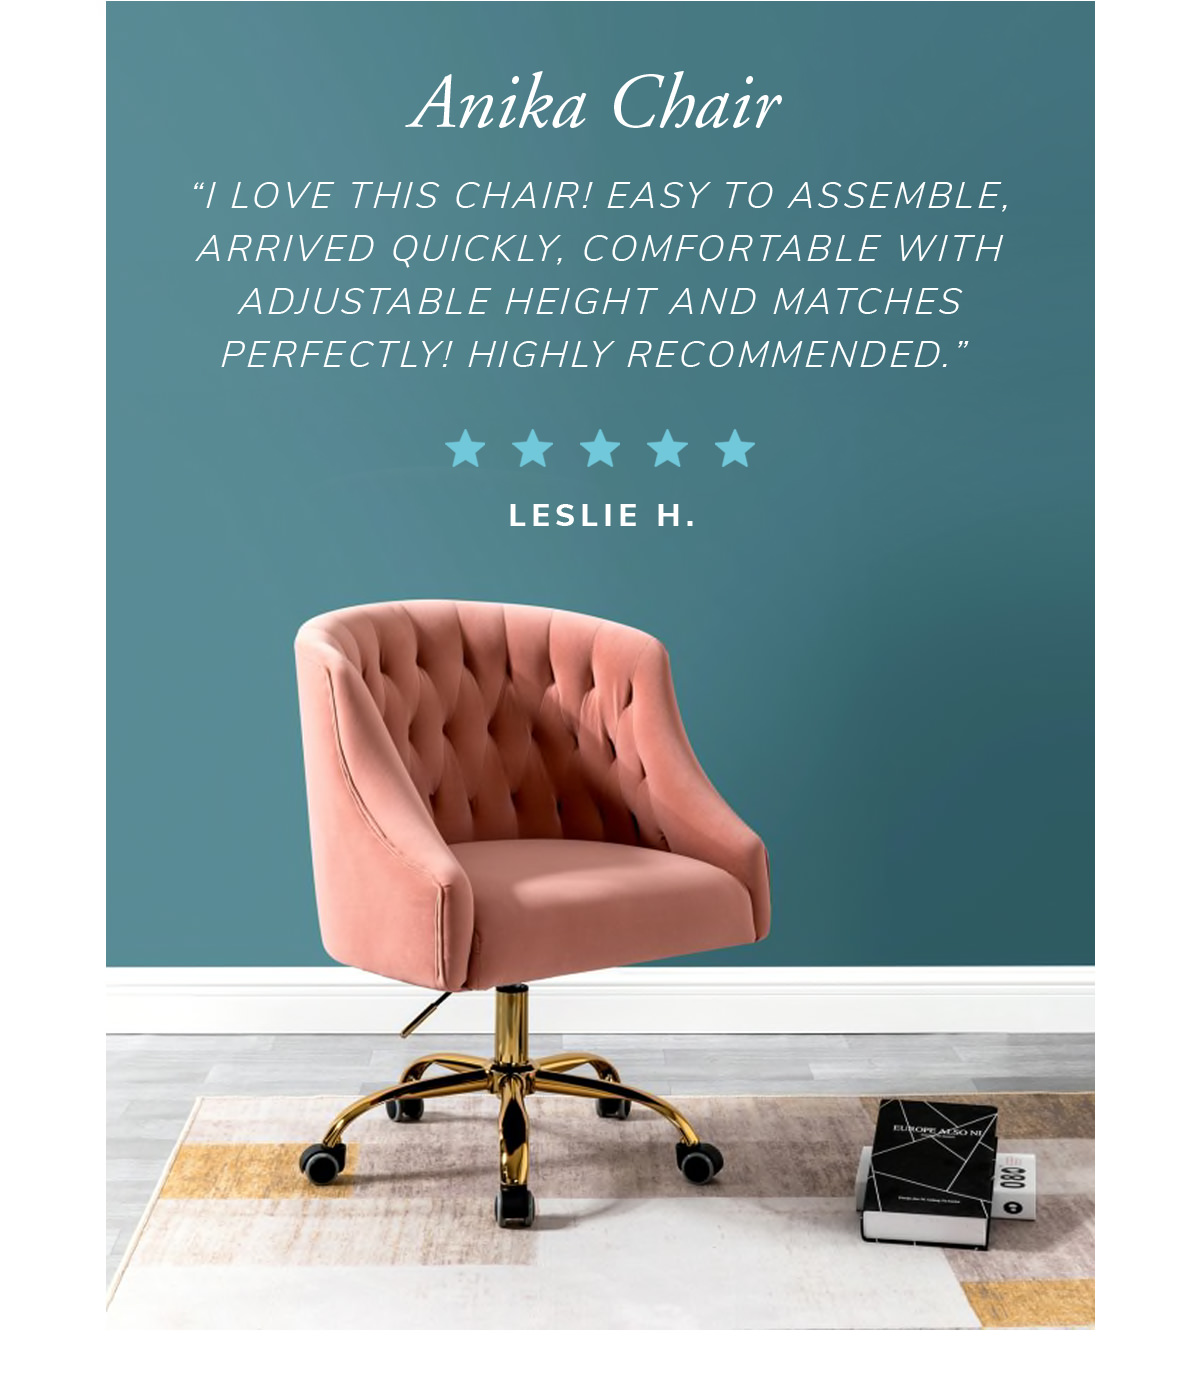 Anika Chair. 'I love this chair! Easy to assemble, arrived quickly. Comfortable with adjustable height and matches perfectly. Highly recommended' | SHOP NOW